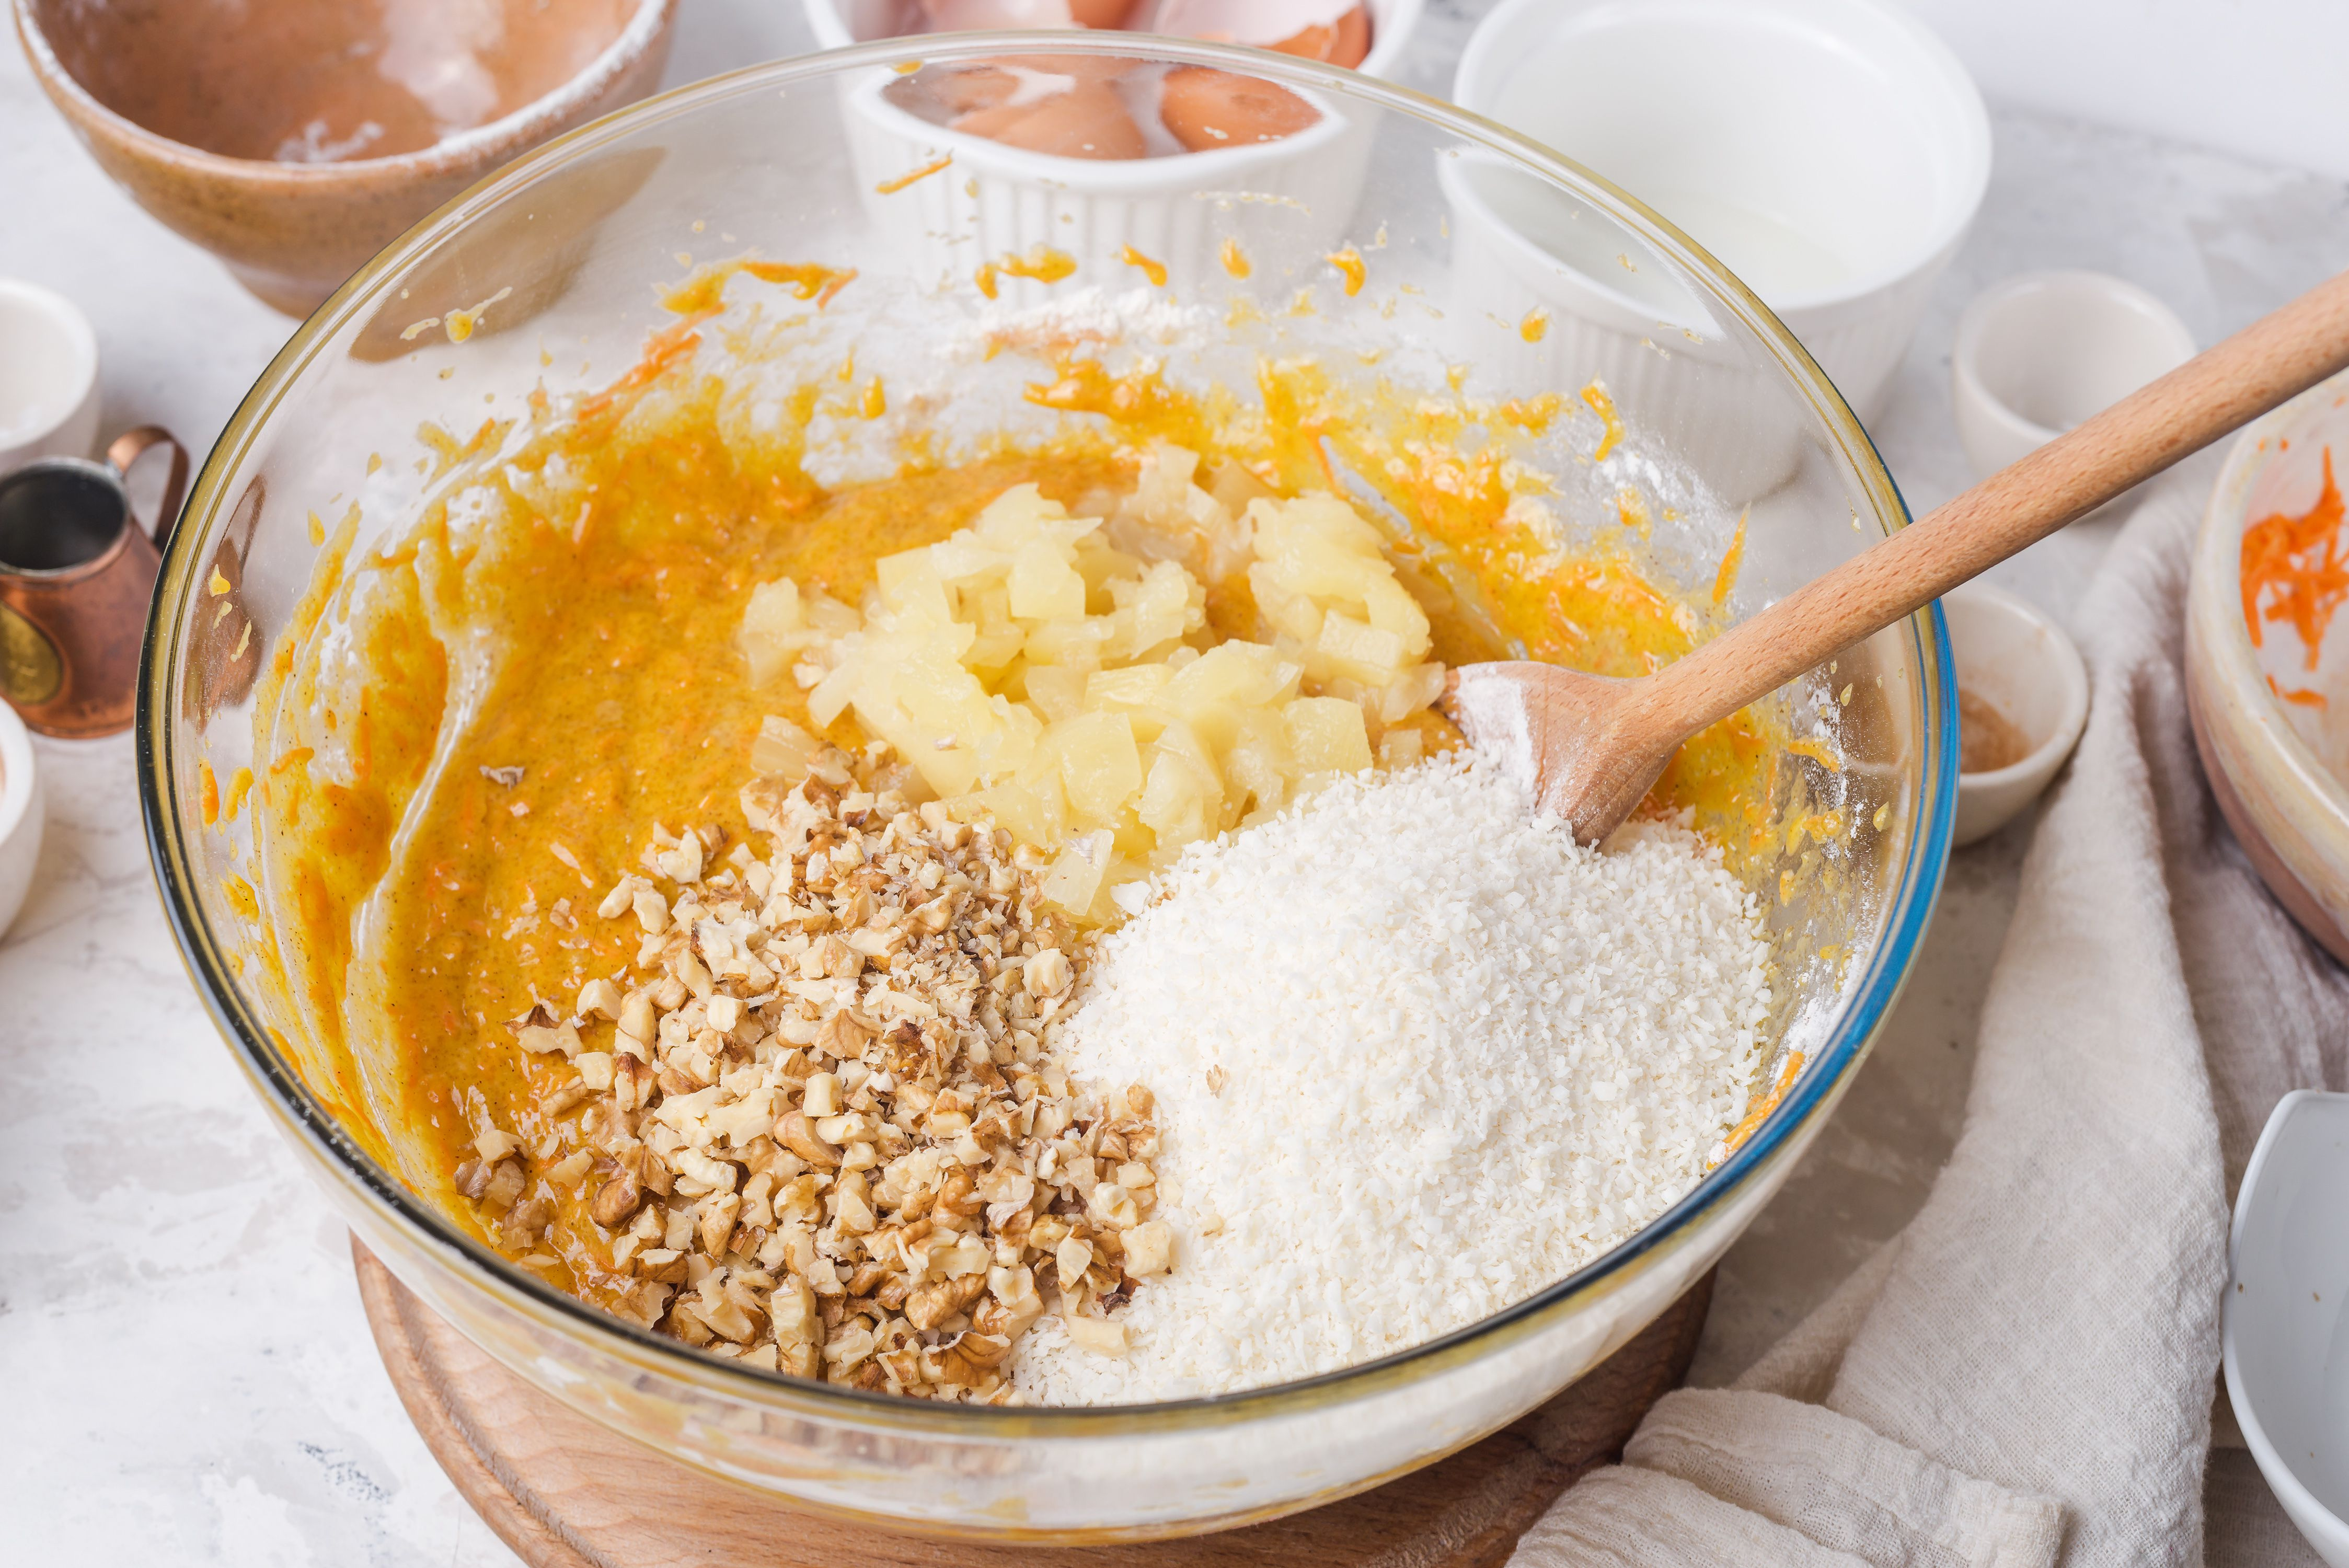 Pineapple, nuts, and coconut added to batter